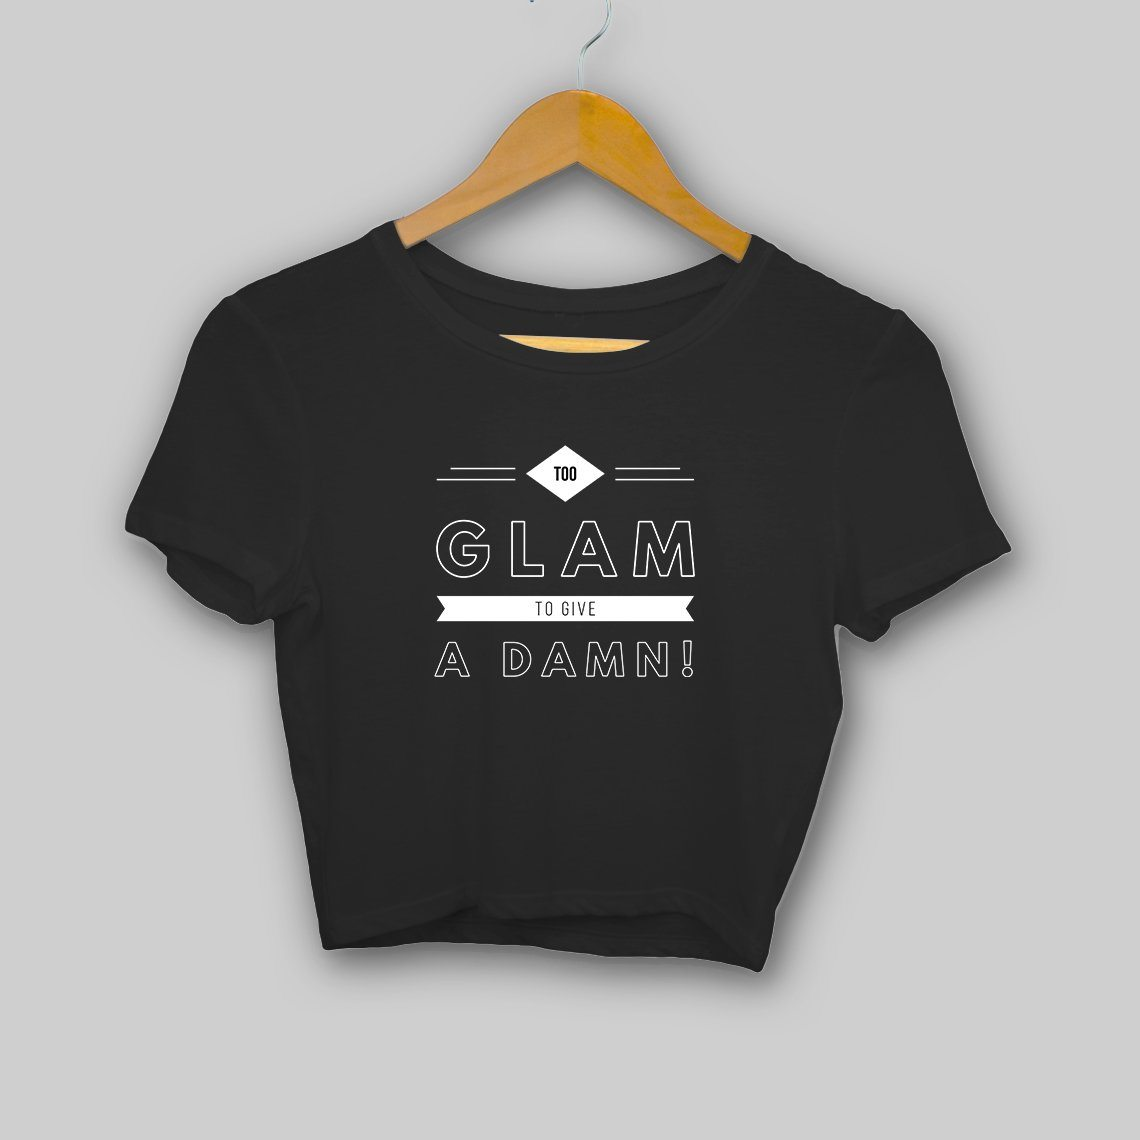 Too Glam! Clothing Printrove Black S